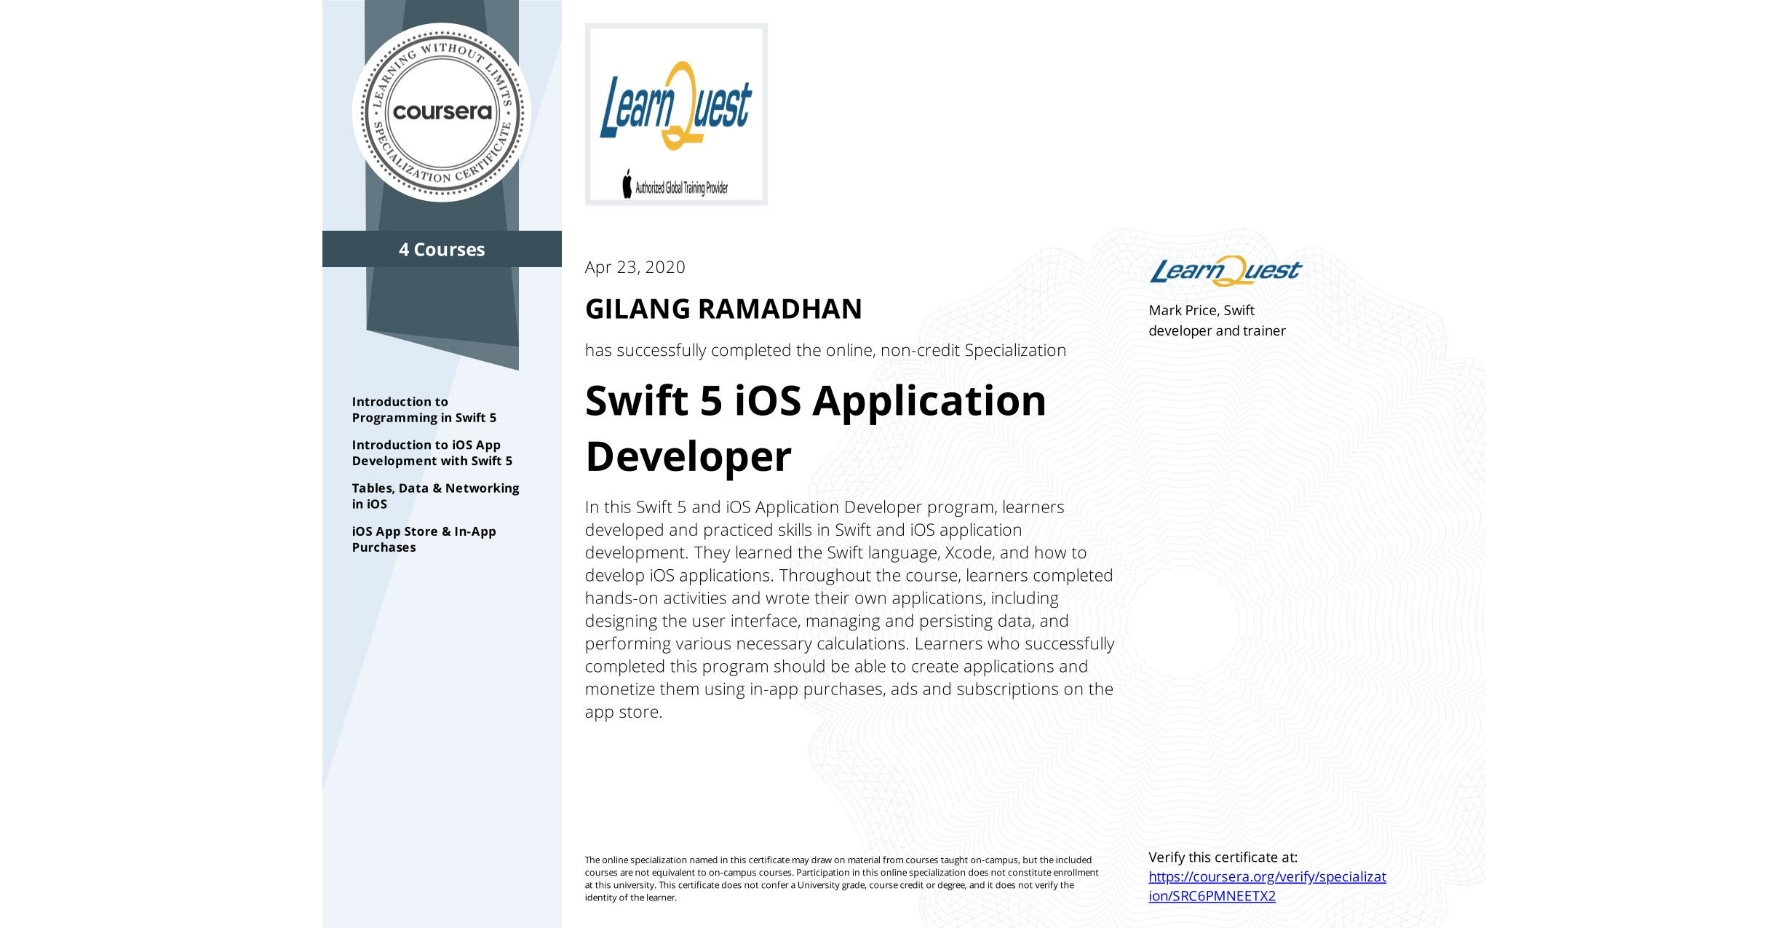 View certificate for Gilang Ramadhan, Swift 5 iOS Application Developer, offered through Coursera. In this Swift 5 and iOS Application Developer program, learners developed and practiced skills in Swift and iOS application development. They learned the Swift language, Xcode, and how to develop iOS applications.  Throughout the course, learners completed hands-on activities and wrote their own applications, including designing the user interface, managing and persisting data, and performing various necessary calculations. Learners who successfully completed this program should be able to create applications and monetize them using in-app purchases, ads and subscriptions on the app store.